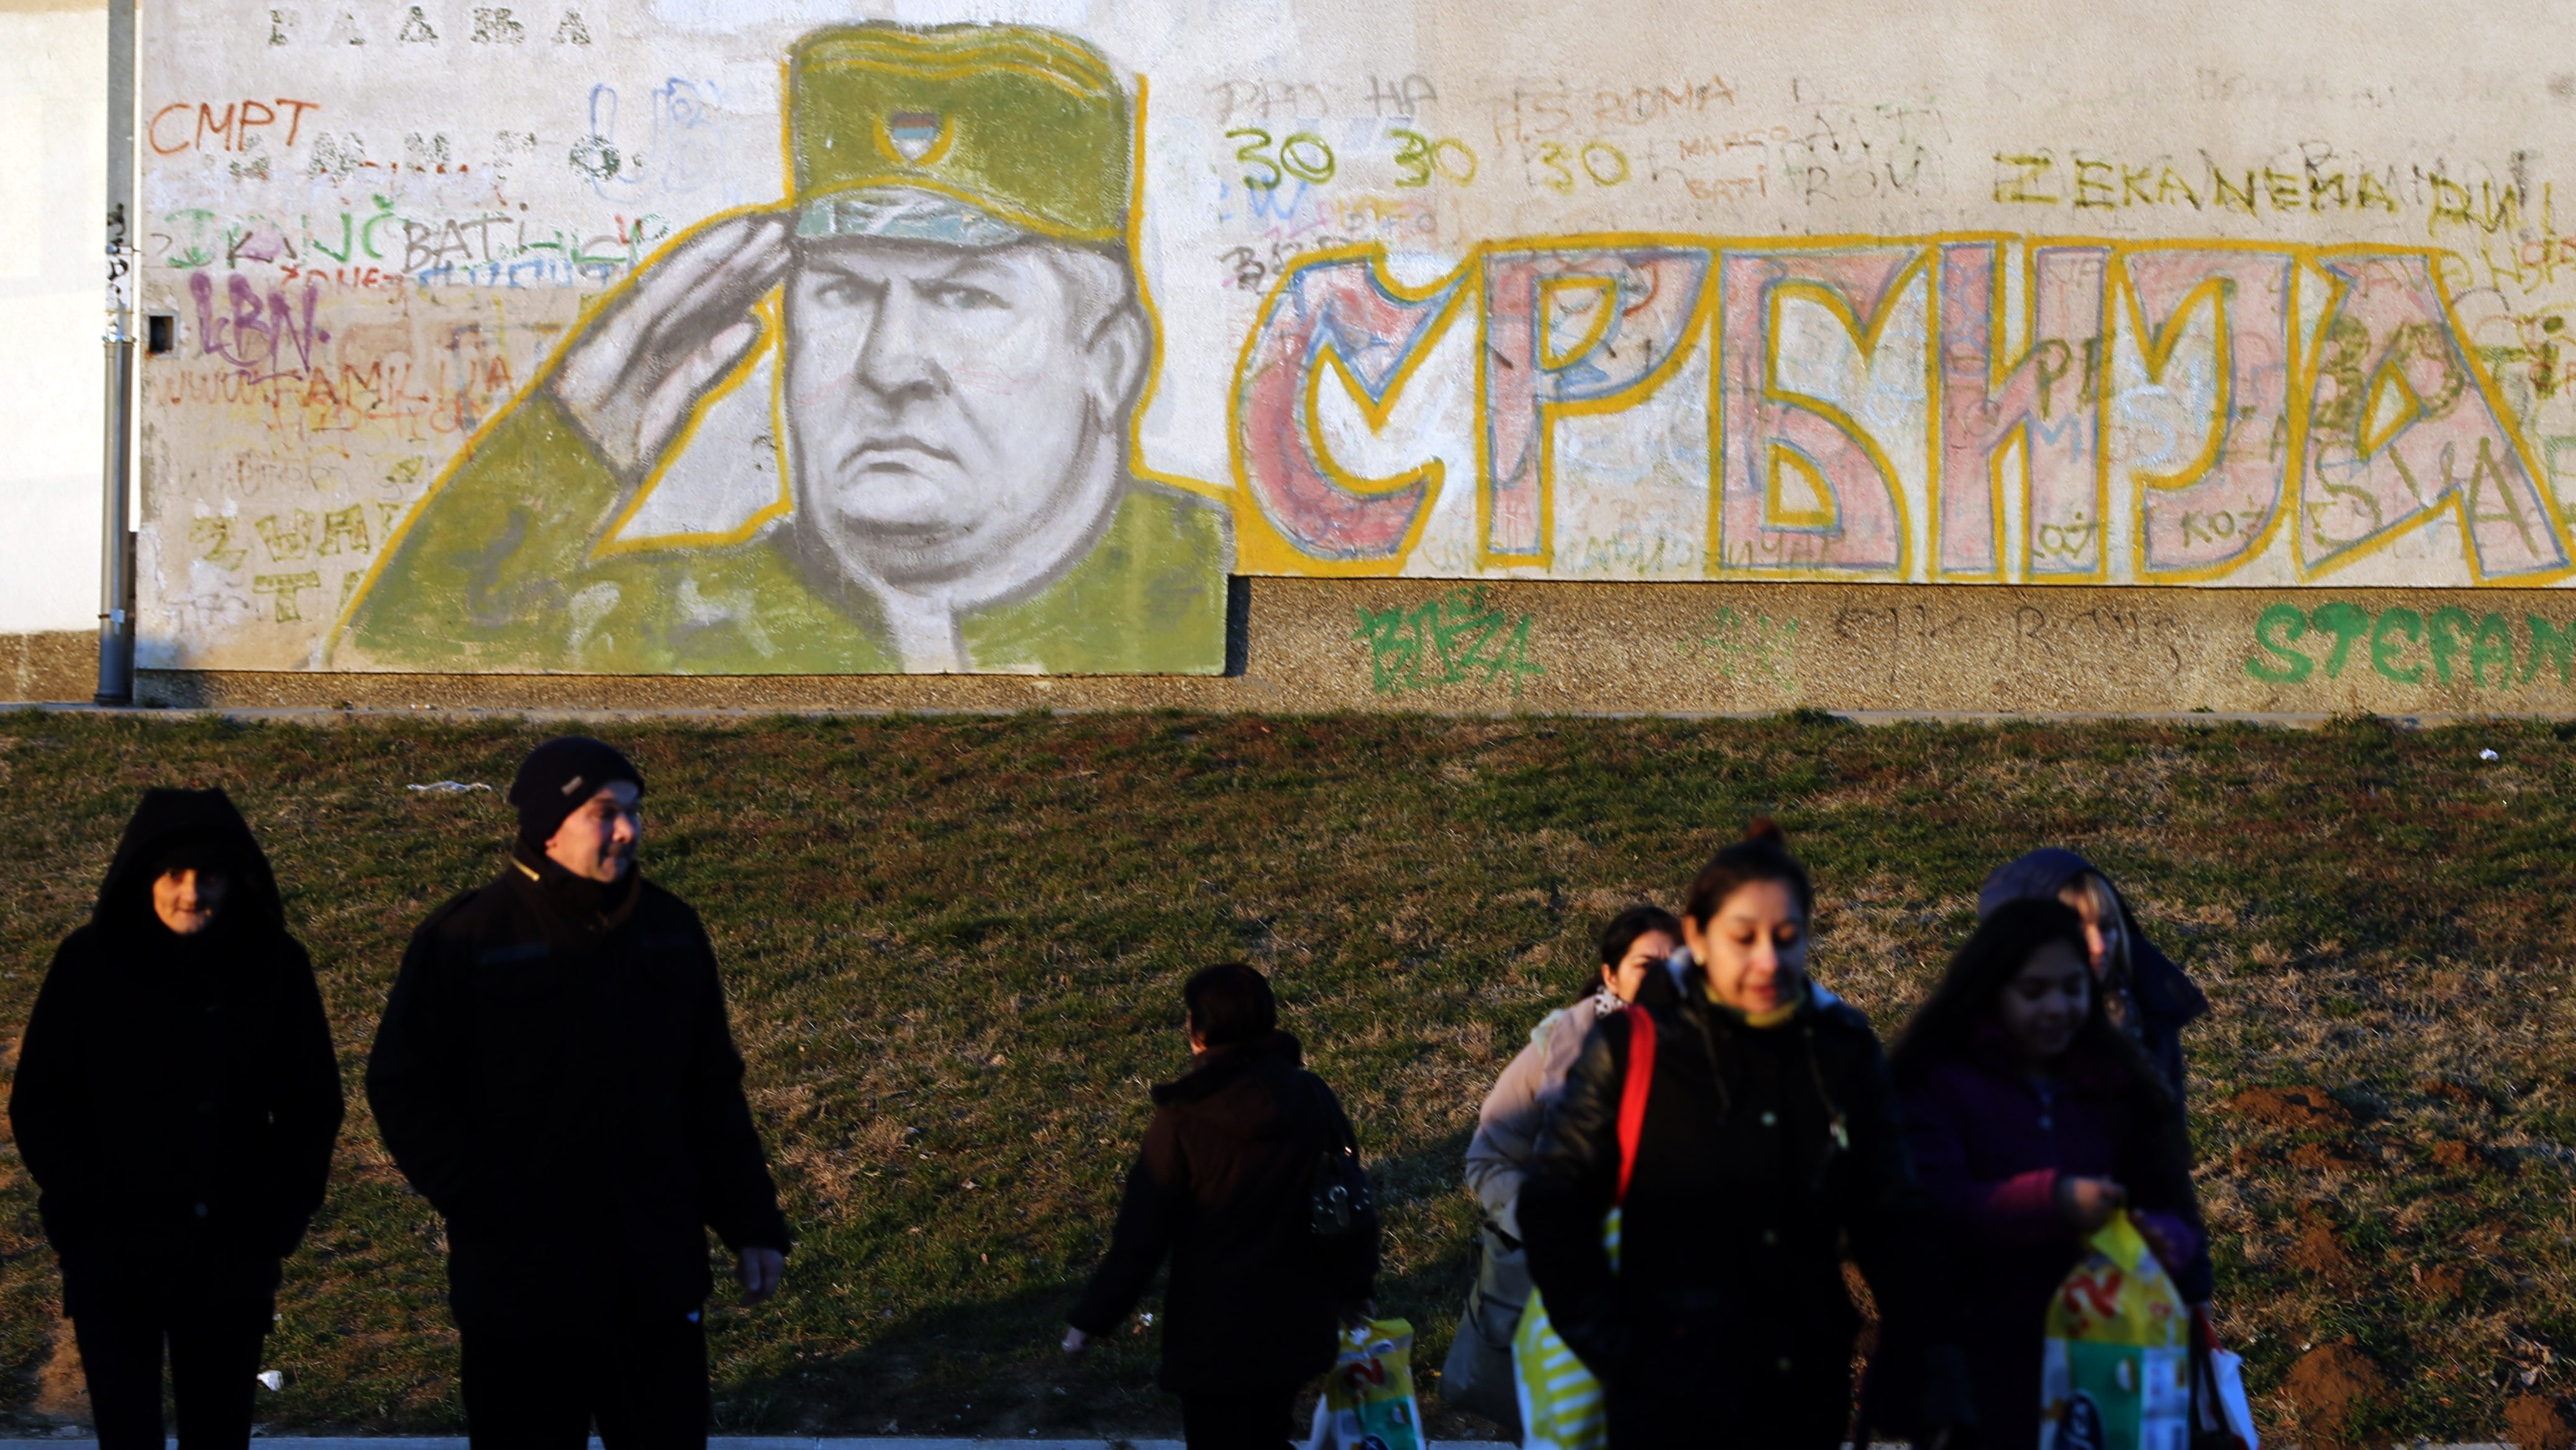 epa05667661 People walk in front of a mural depicting Serbian General Ratko Mladic, a war-time Bosnian Serb military commander, in a suburb of Belgrade, Serbia, 12 December 2016. Mladic, who is tried for warcrimes committed in Bosnia and Hercegovina between 1992-1995, is to start his defense plea in the trial at the International Criminal Tribunal for the former Yugoslavia (ICTY) in The Hague, The Netherlands. According to media reports the chief prosecutor in the trial on 07 December had called for a lifetime imprisonment for Mladic for his involvement in the Srebrenica masacre.  EPA/KOCA SULEJMANOVIC